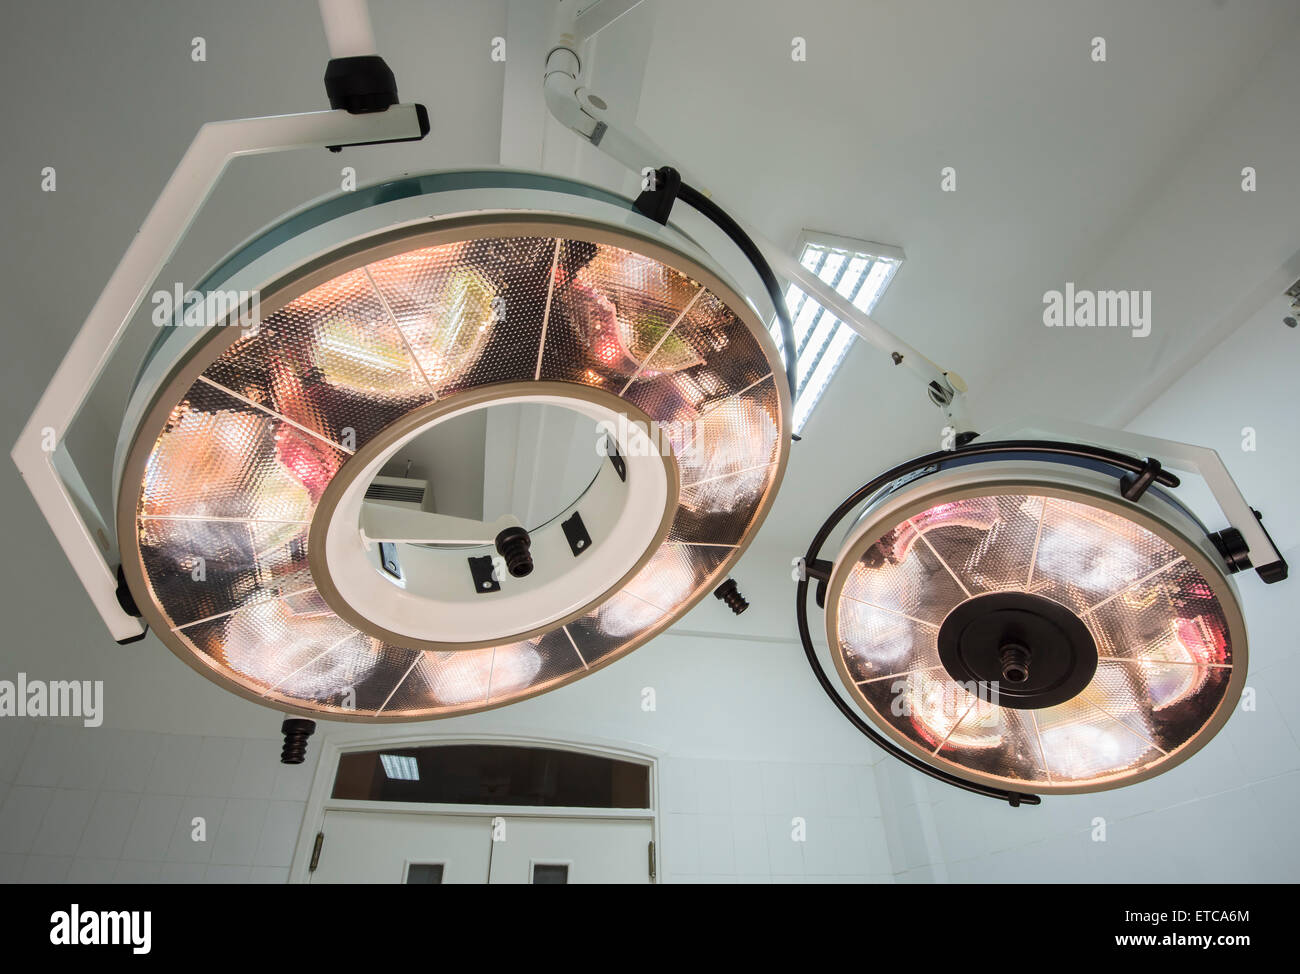 High powered circular surgery lights in a hospital operating room - Stock Image